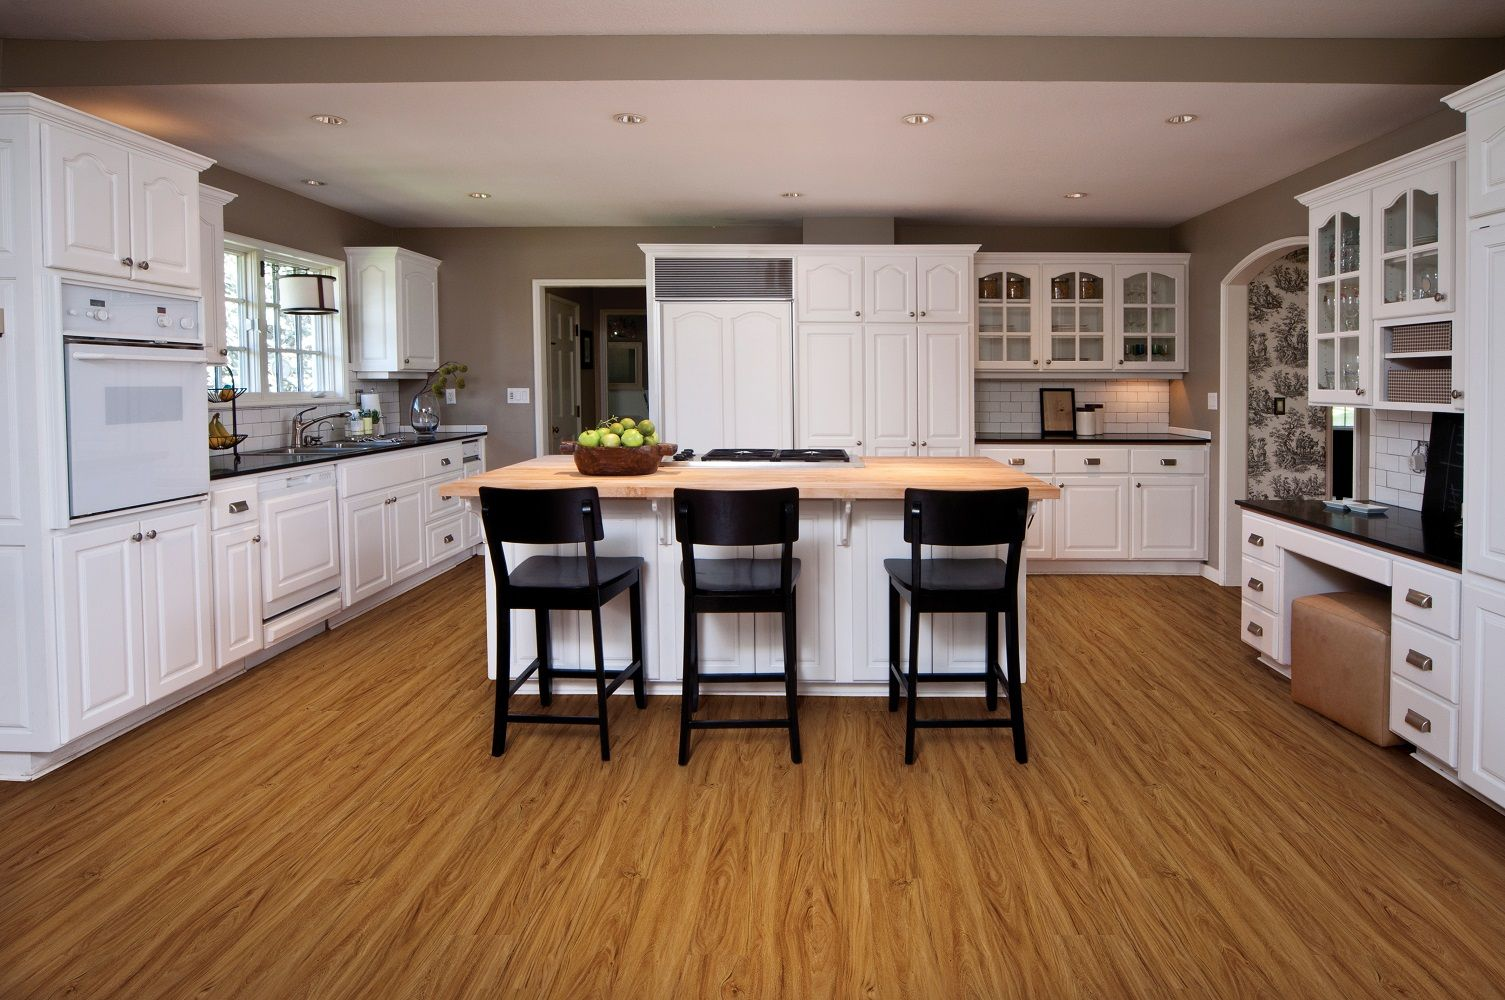 pin by bell floor covering on vinyl flooring you won t believe its not wood kitchen designs on kitchen remodel vinyl flooring id=60778